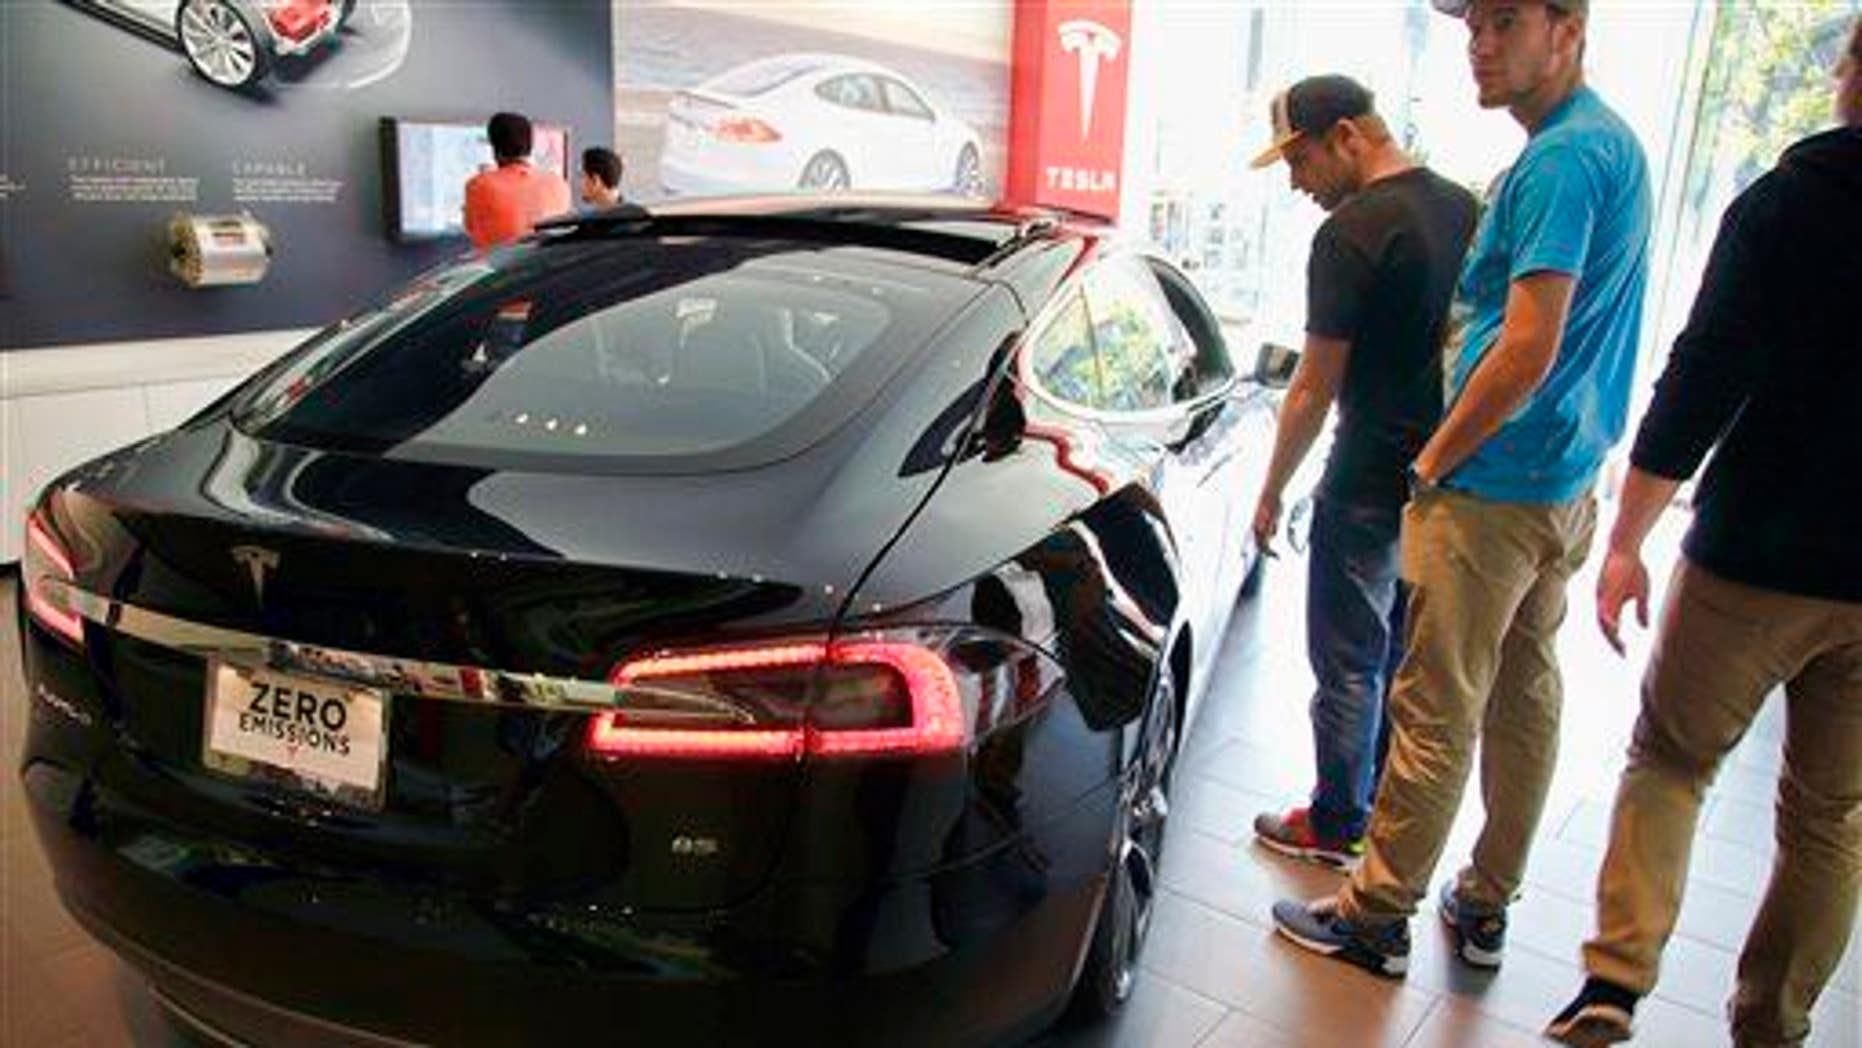 In this Saturday, Jan. 3, 2015 photo, people check out the Tesla model S at the Tesla showroom at the the Third Street Promenade in Santa Monica, Calif.